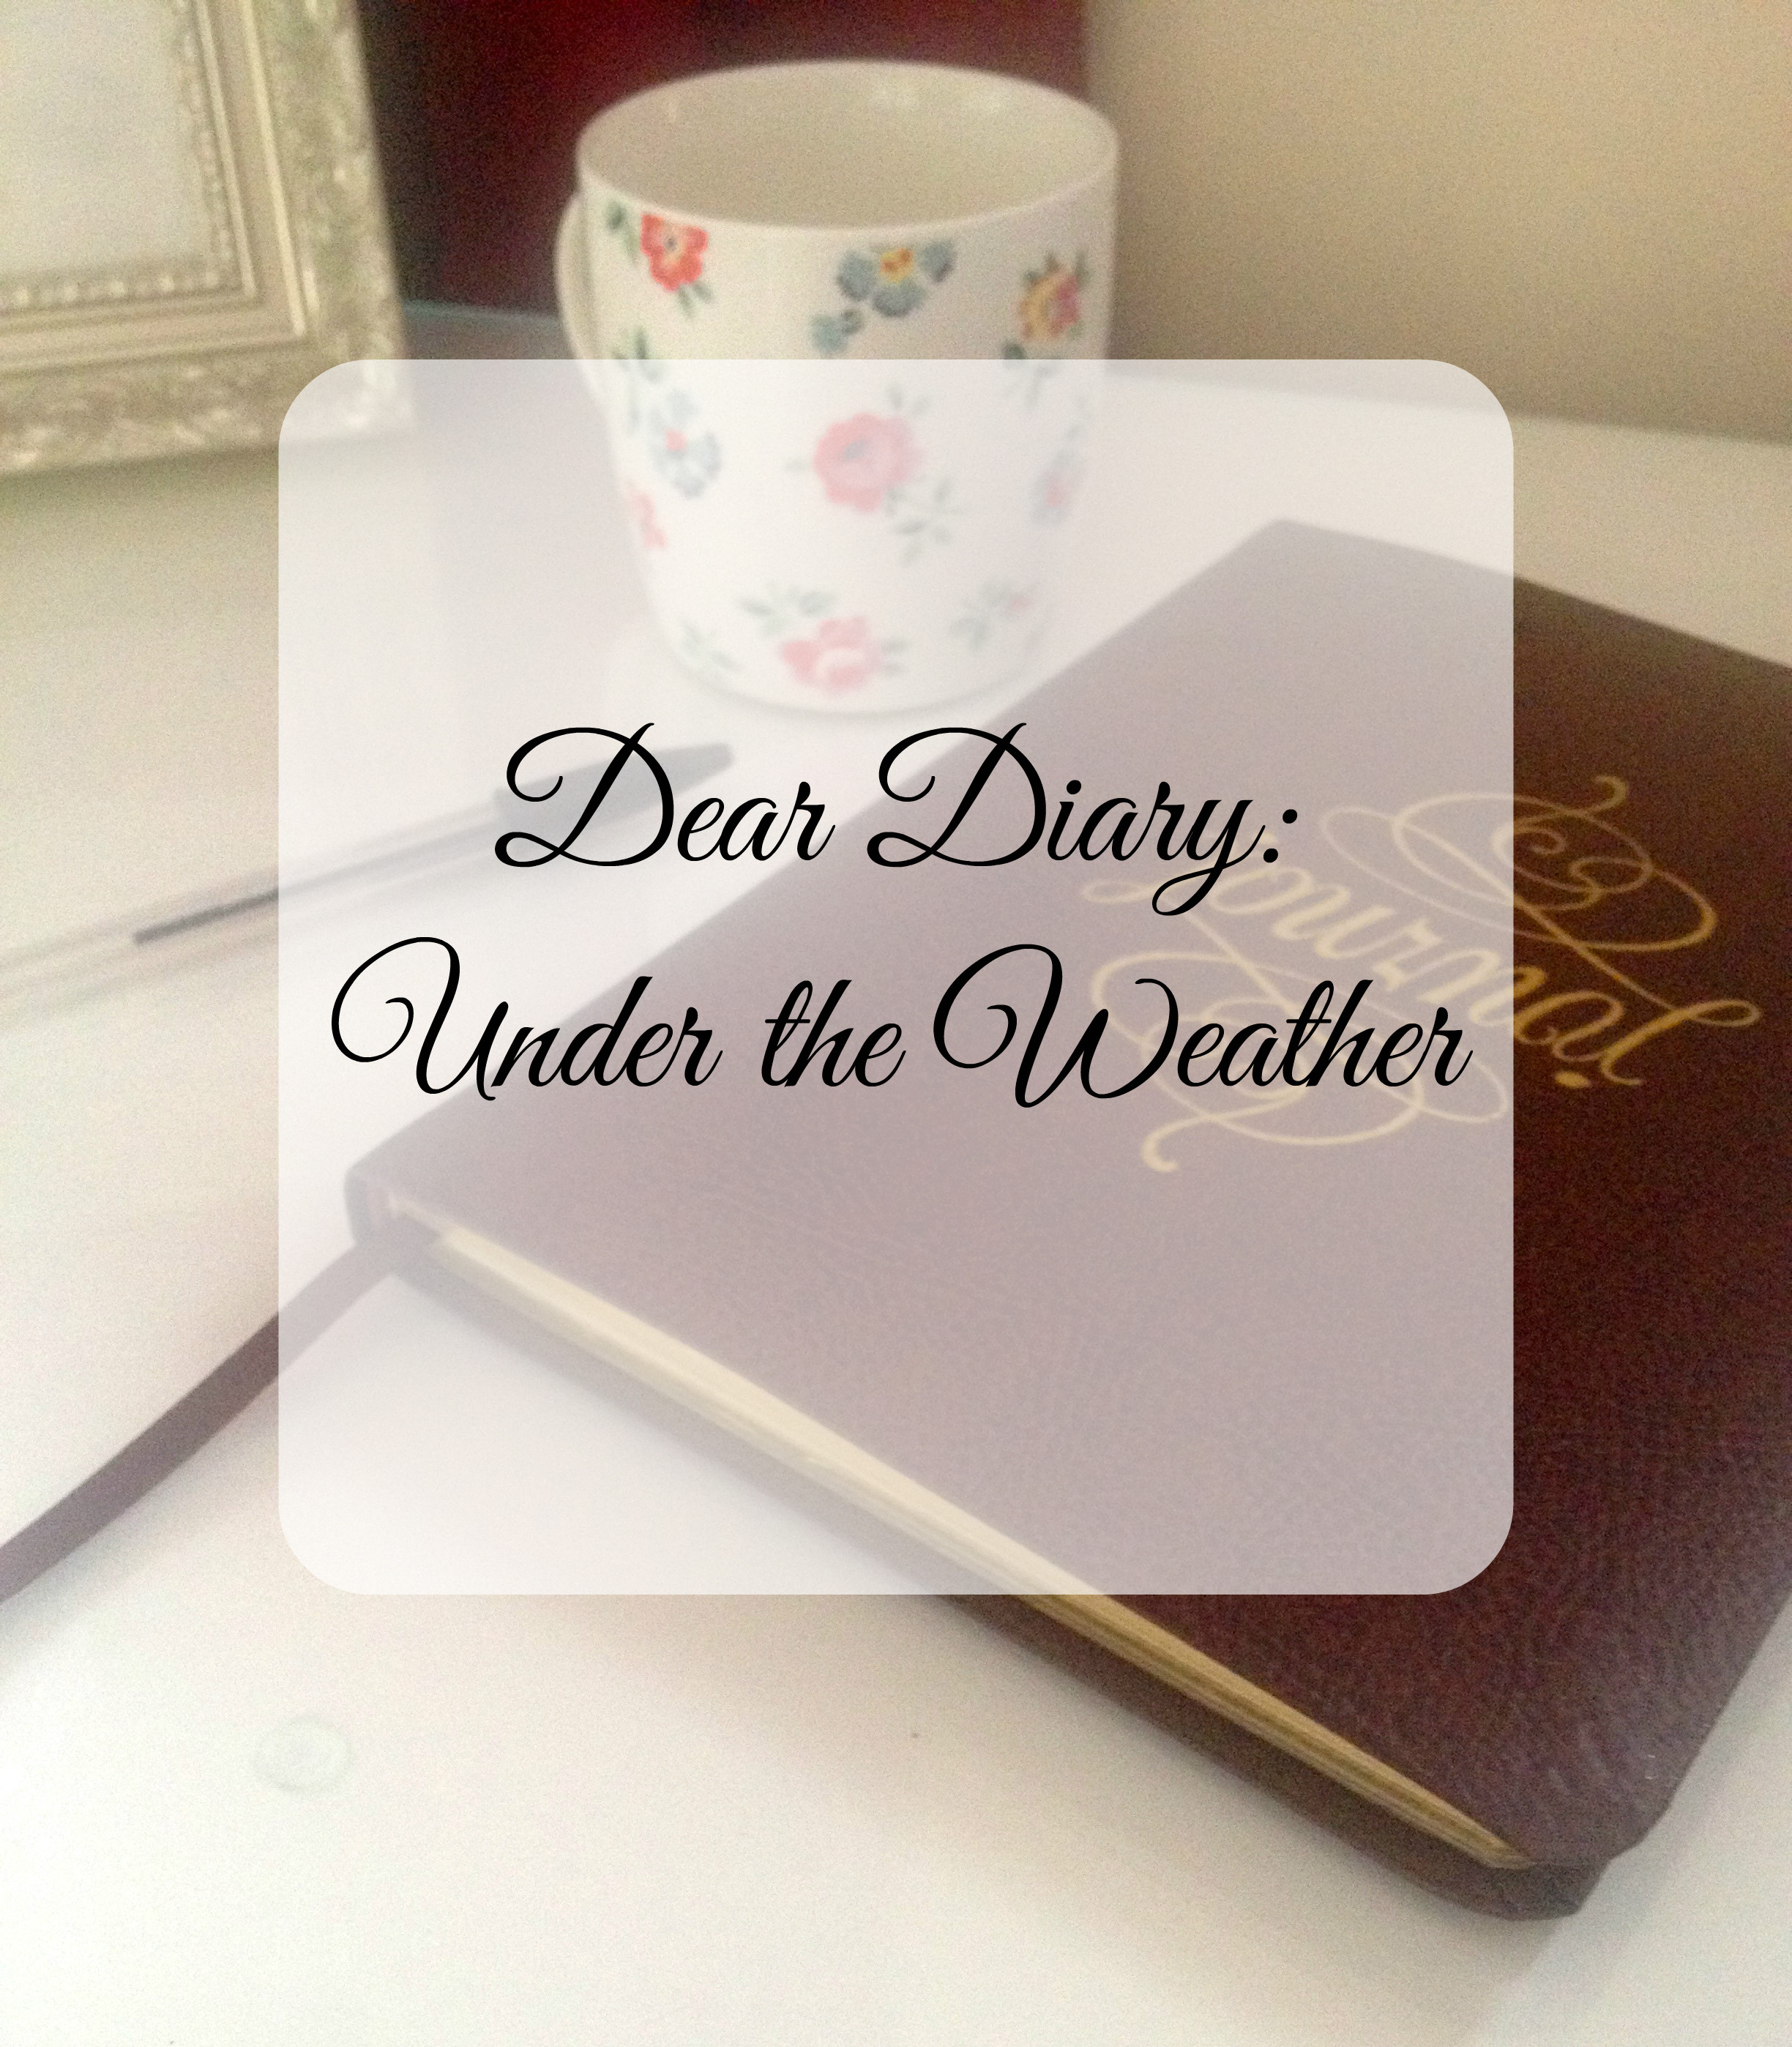 Dear Diary: Under the weather